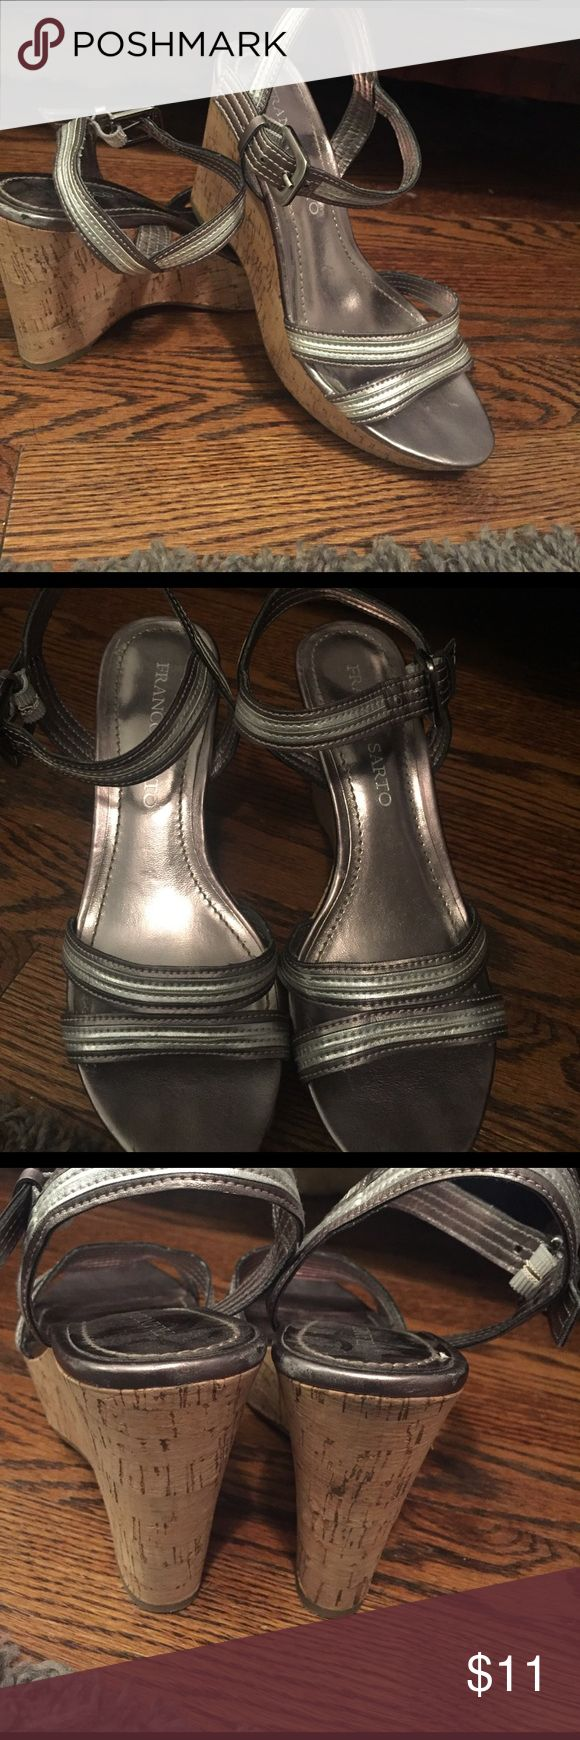 "Franco Sarto metallic wedges These are so cute and comfortable!! Pre- loved with a couple scuffs. (See pics) but when they're on your feet, you don't really notice them!! So much life left for someone new to enjoy!! All man made materials..""vegan leather"" Franco Sarto Shoes Wedges"